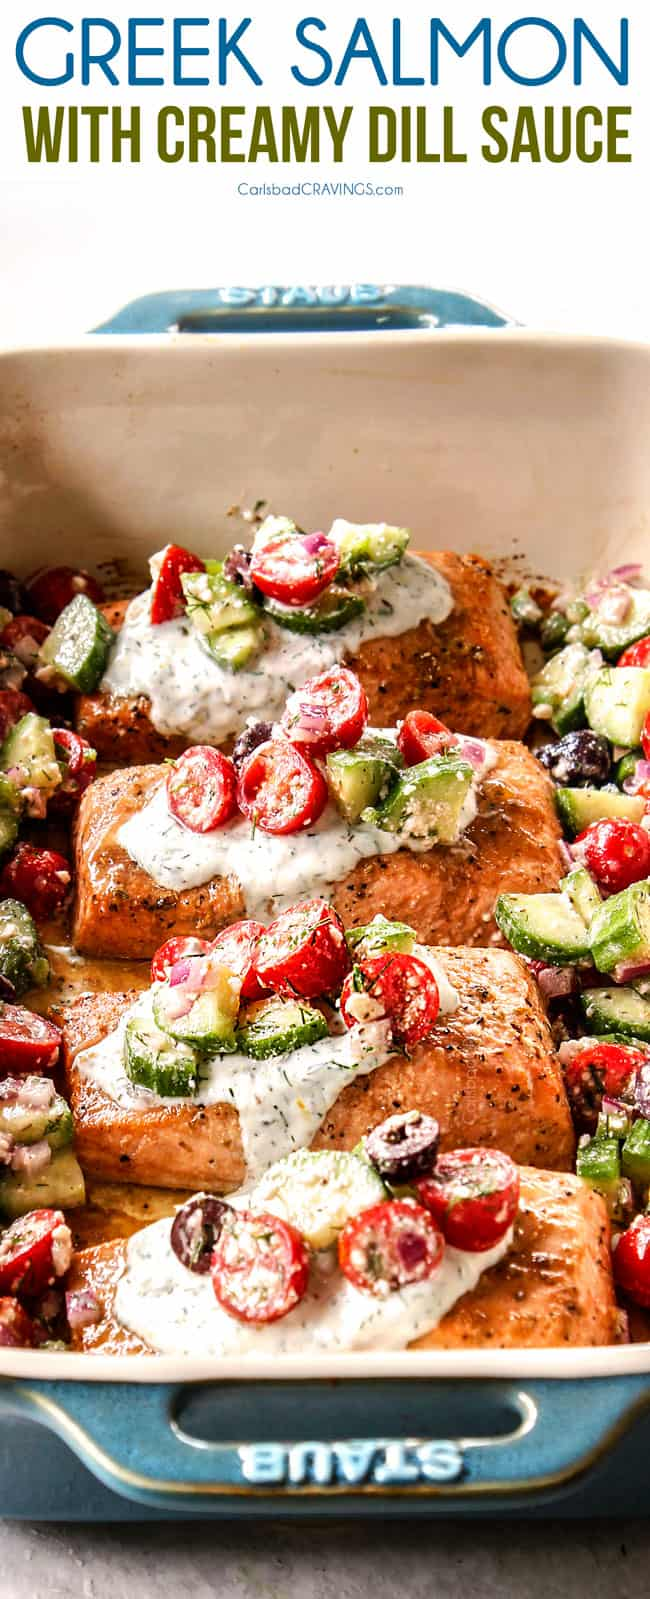 up close side view of healthy salmon recipe with dill sauce